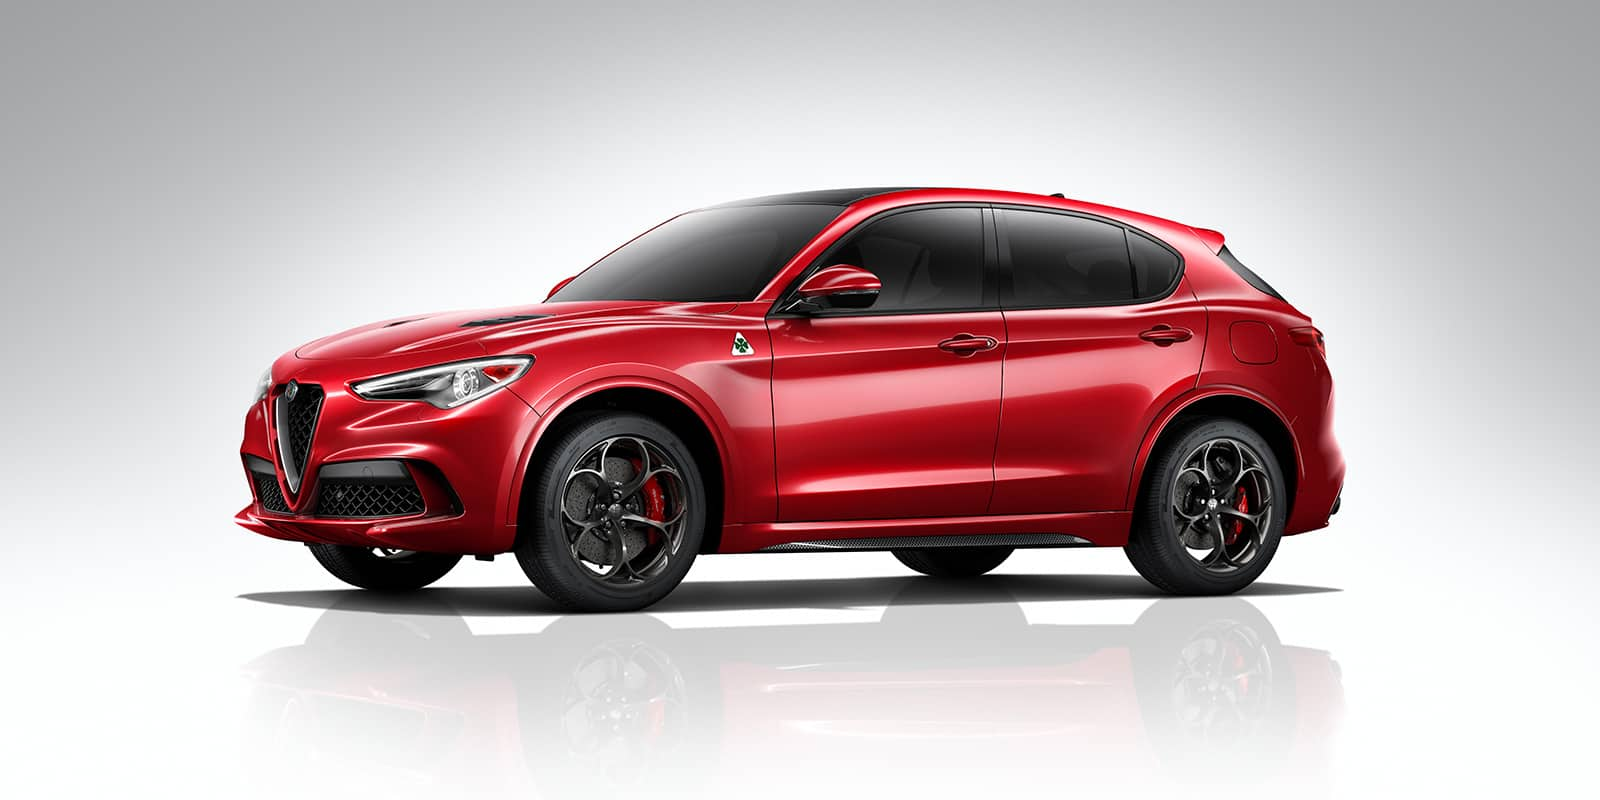 stelvio quadrifoglio the all new alfa romeo italian suv. Black Bedroom Furniture Sets. Home Design Ideas